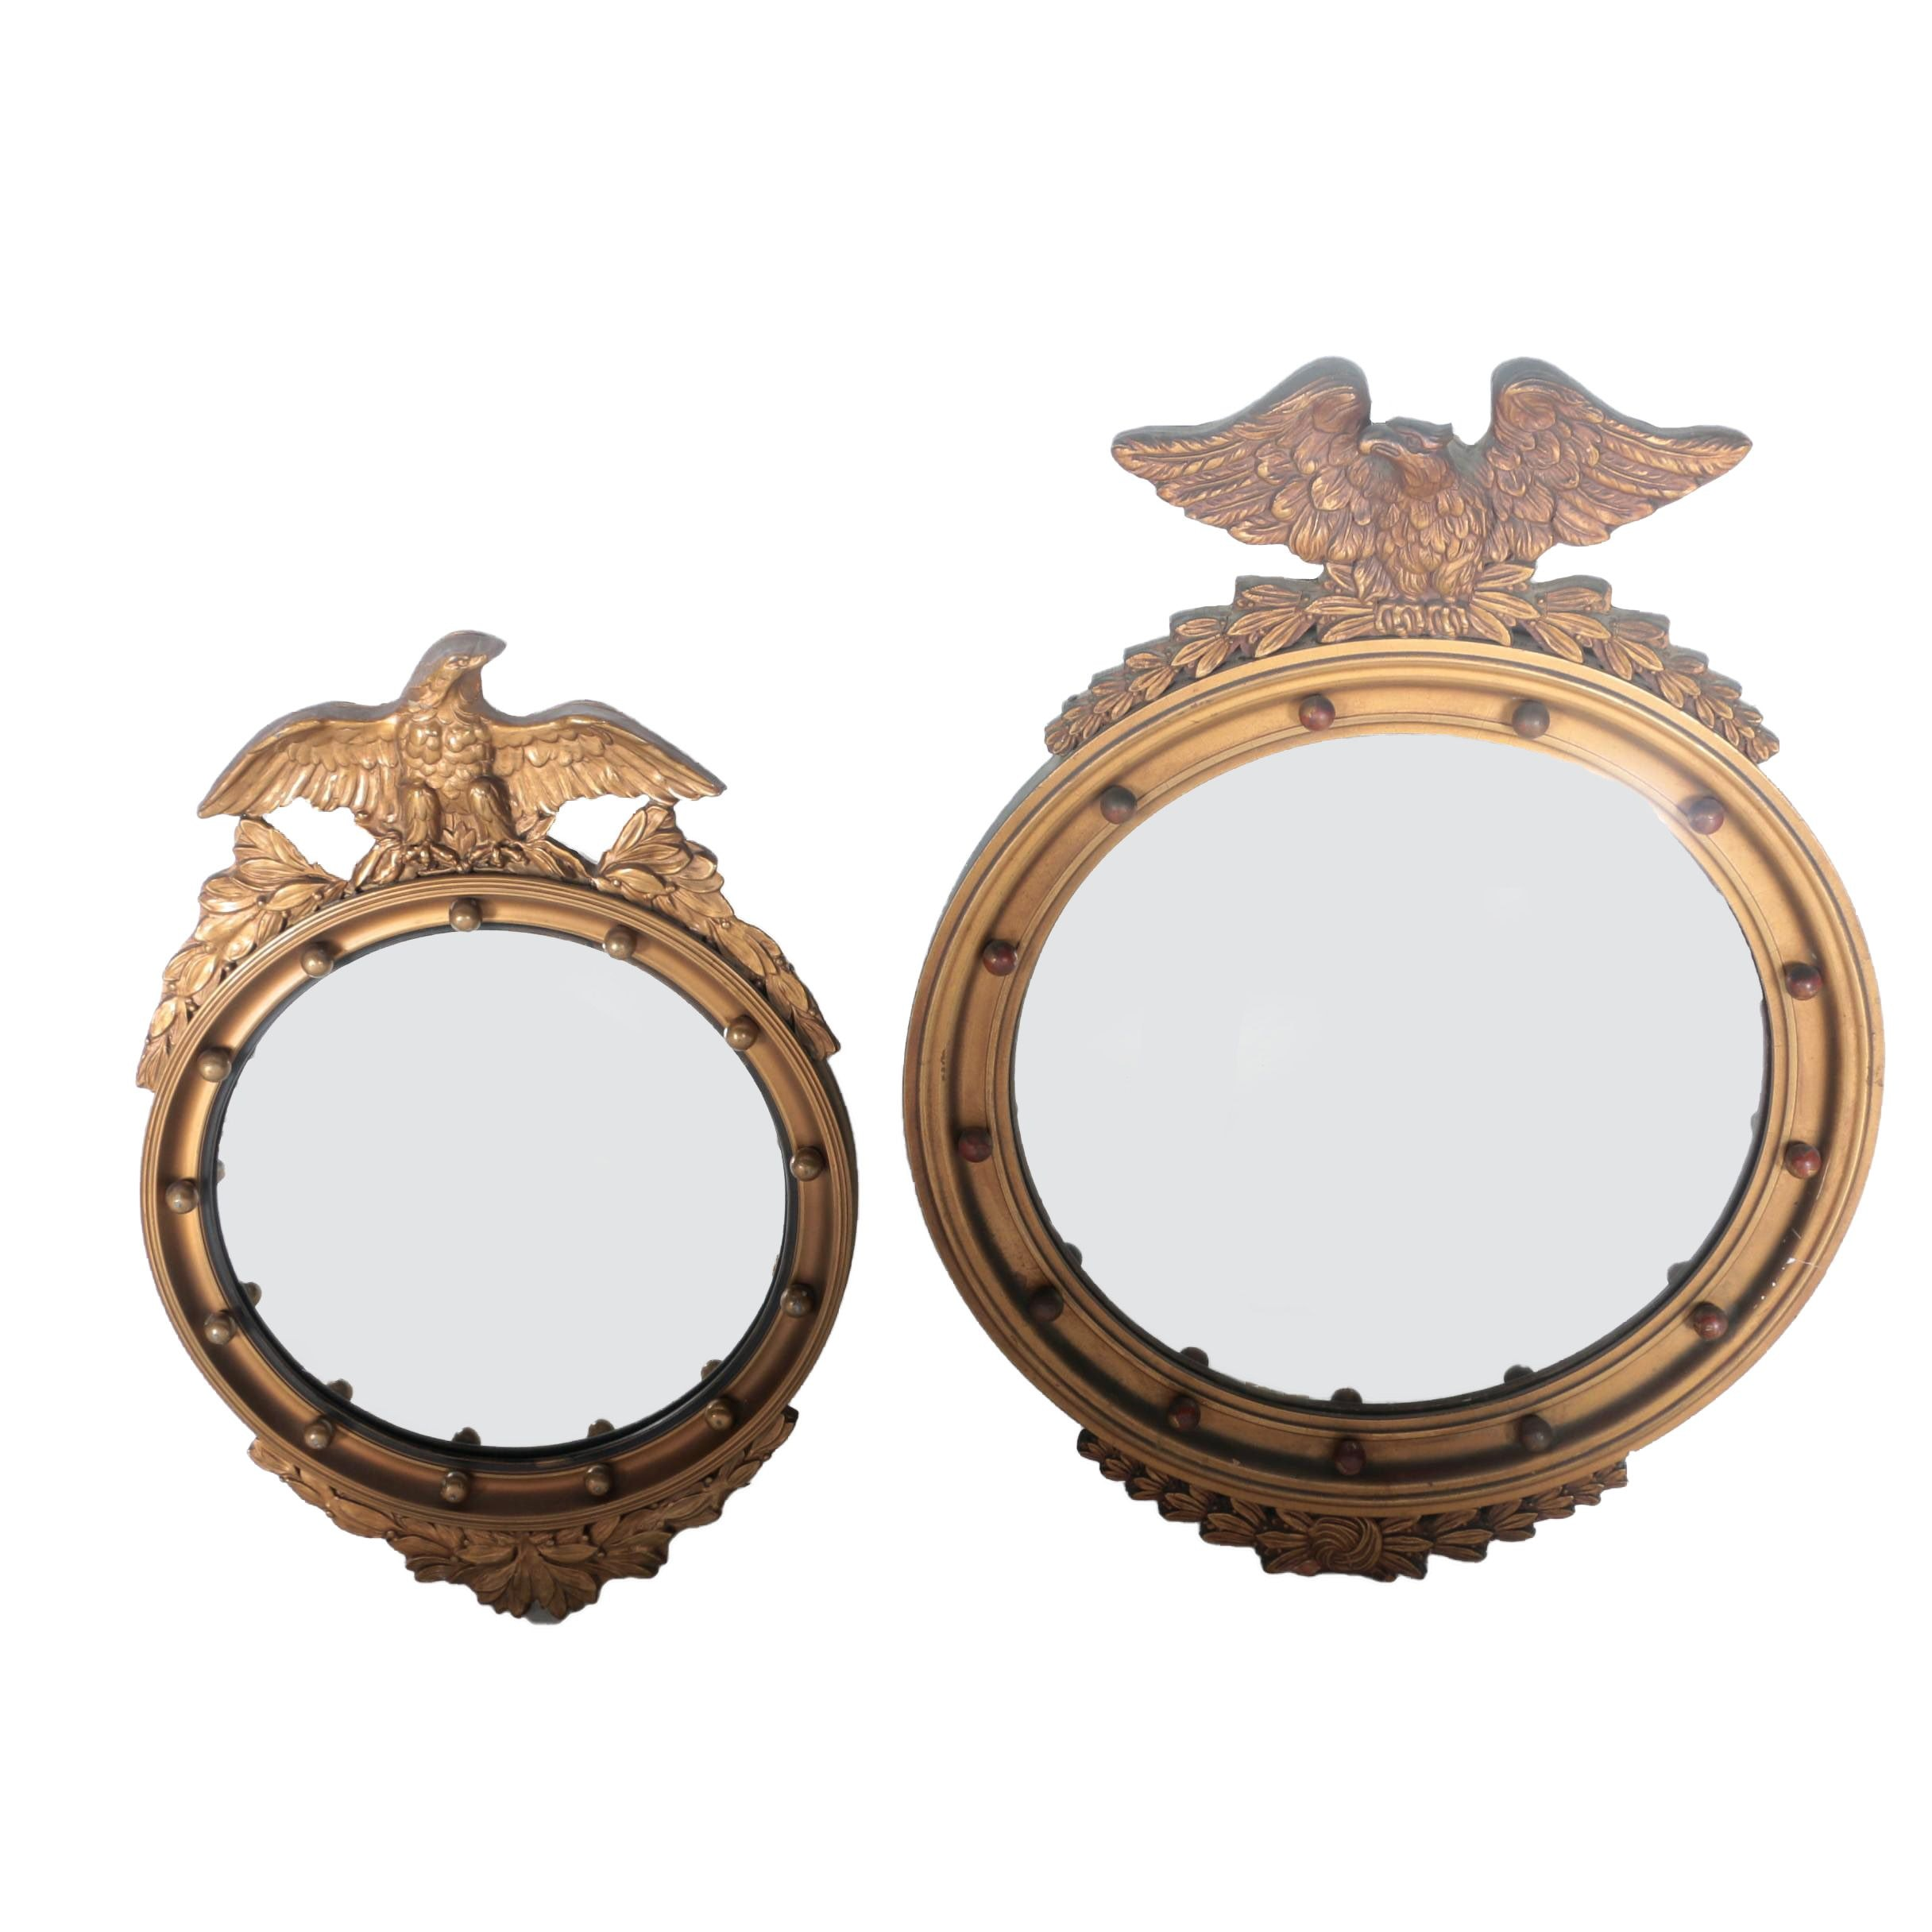 Antique Federal Style Convex Mirrors